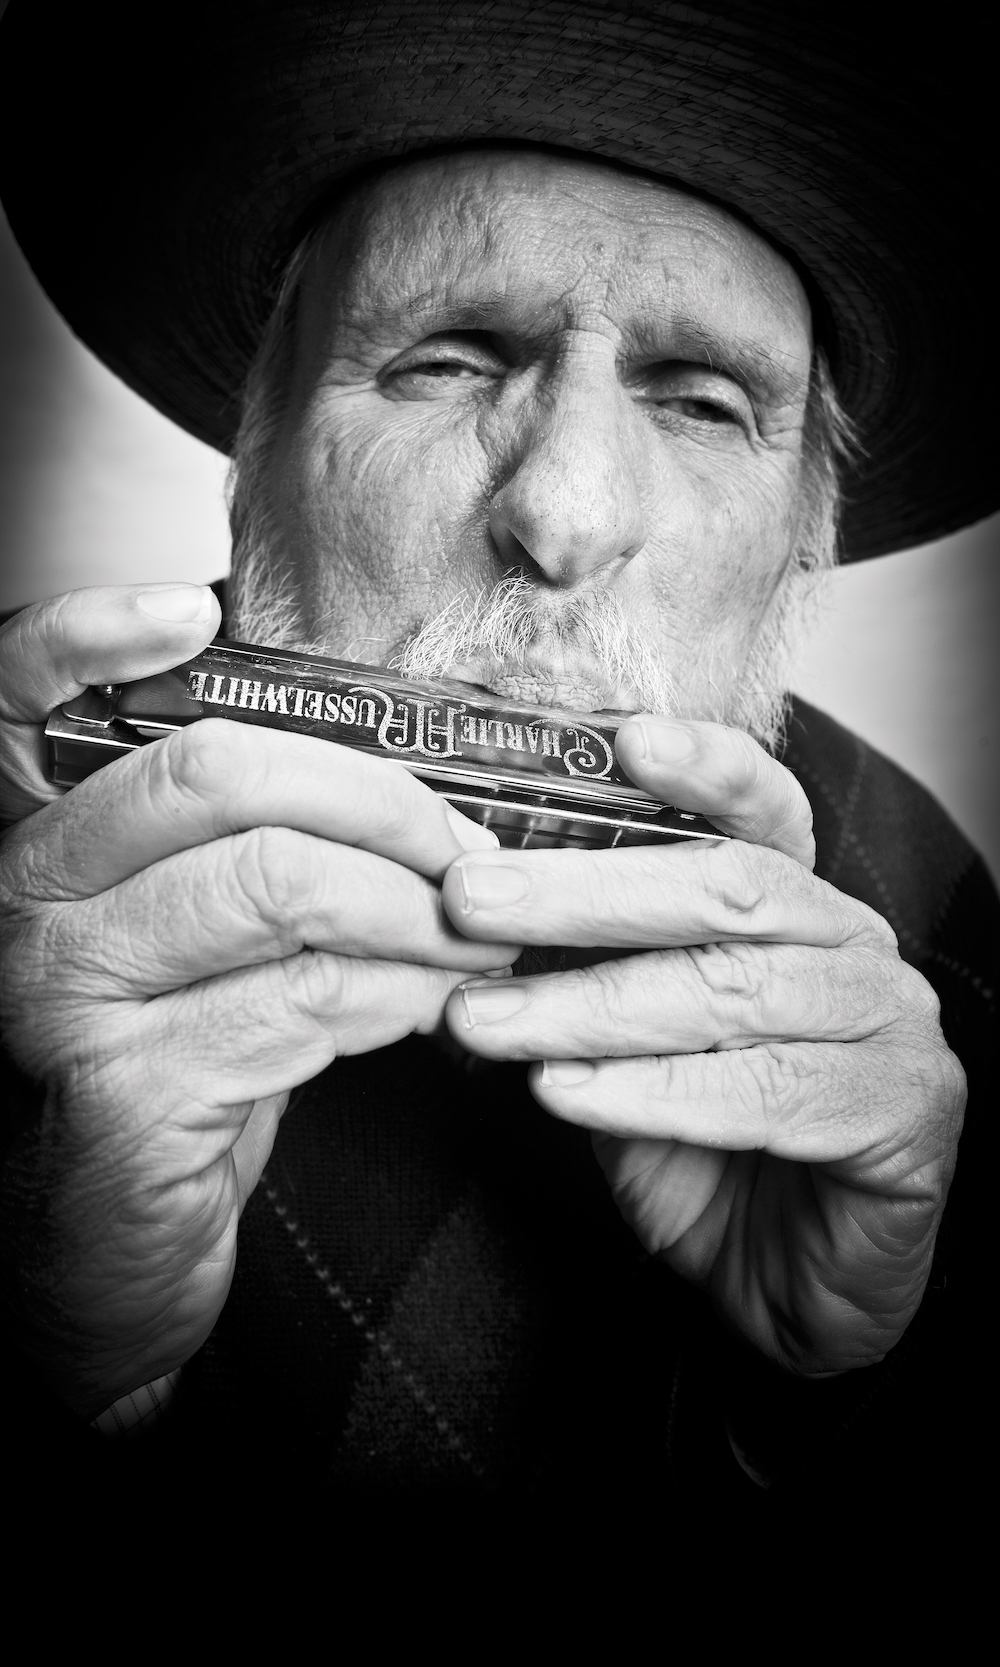 Mick Martin in black and white playing his harmonica